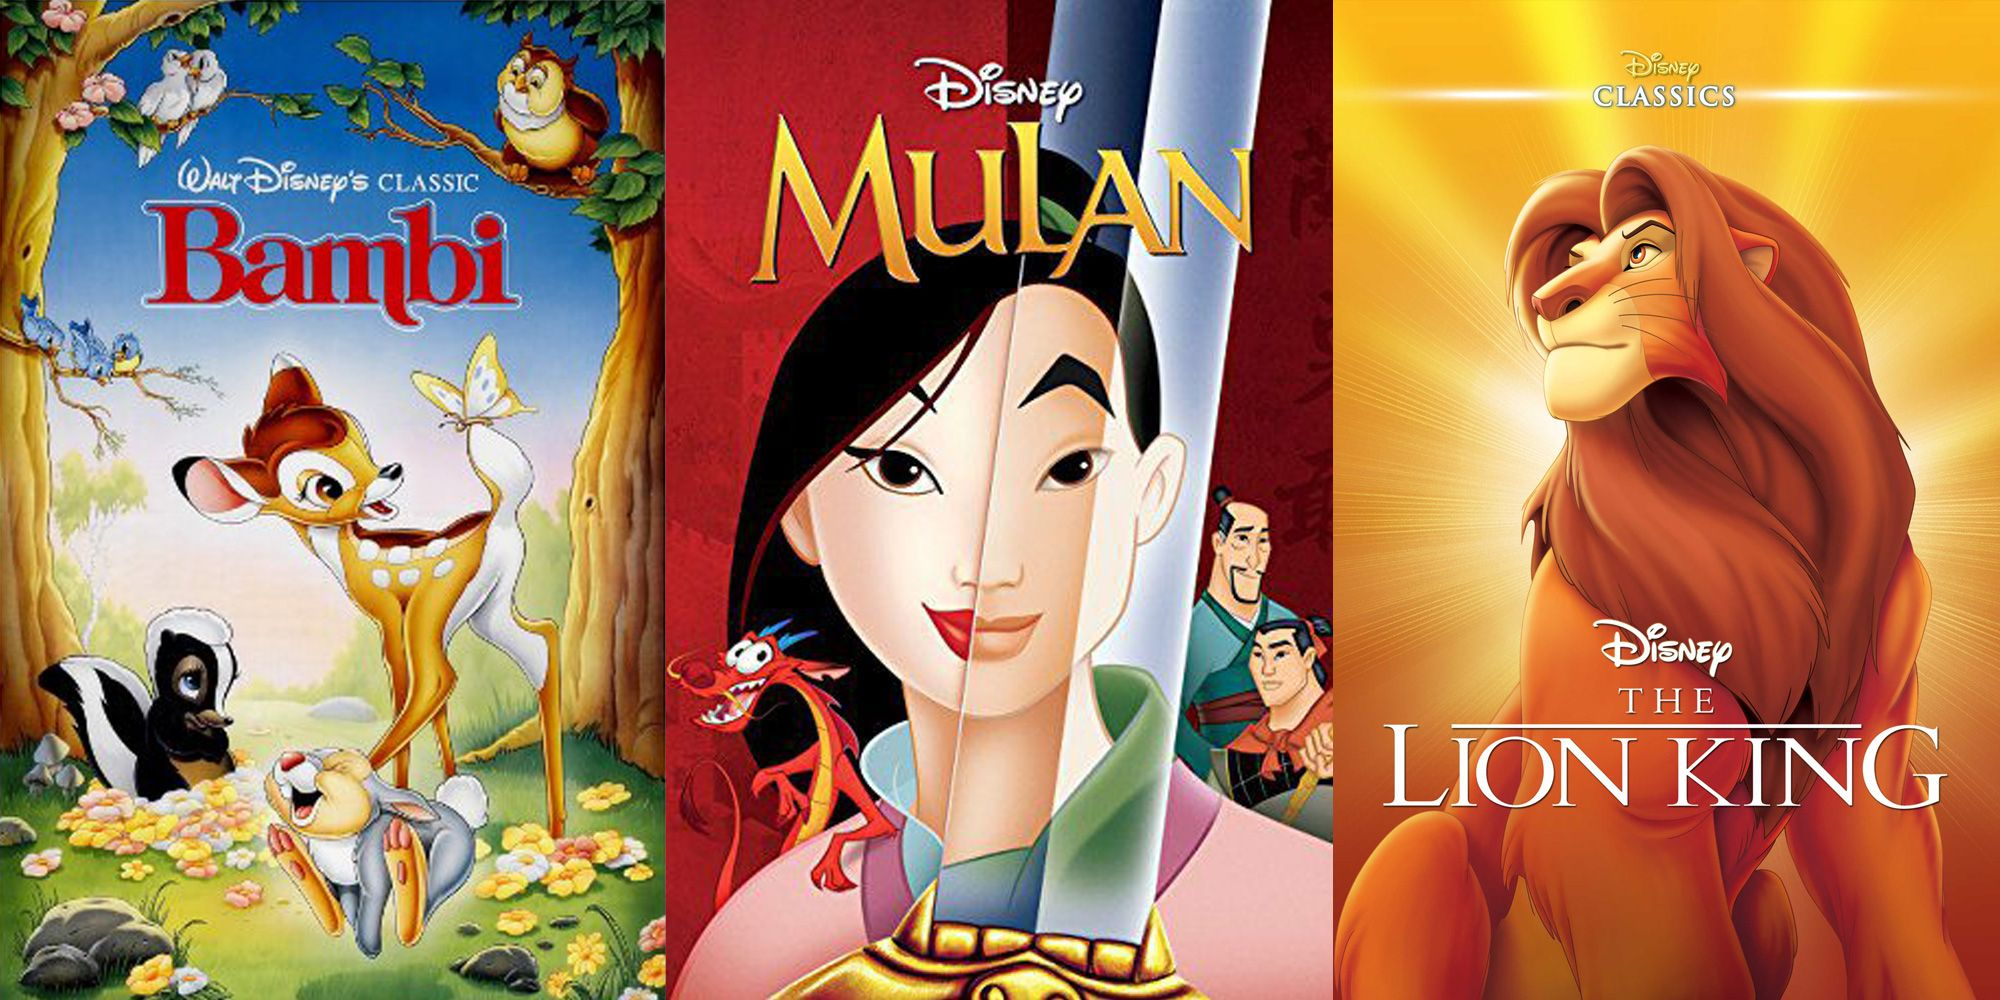 20 Best Disney Movies - Top Animated Disney Films of All Time